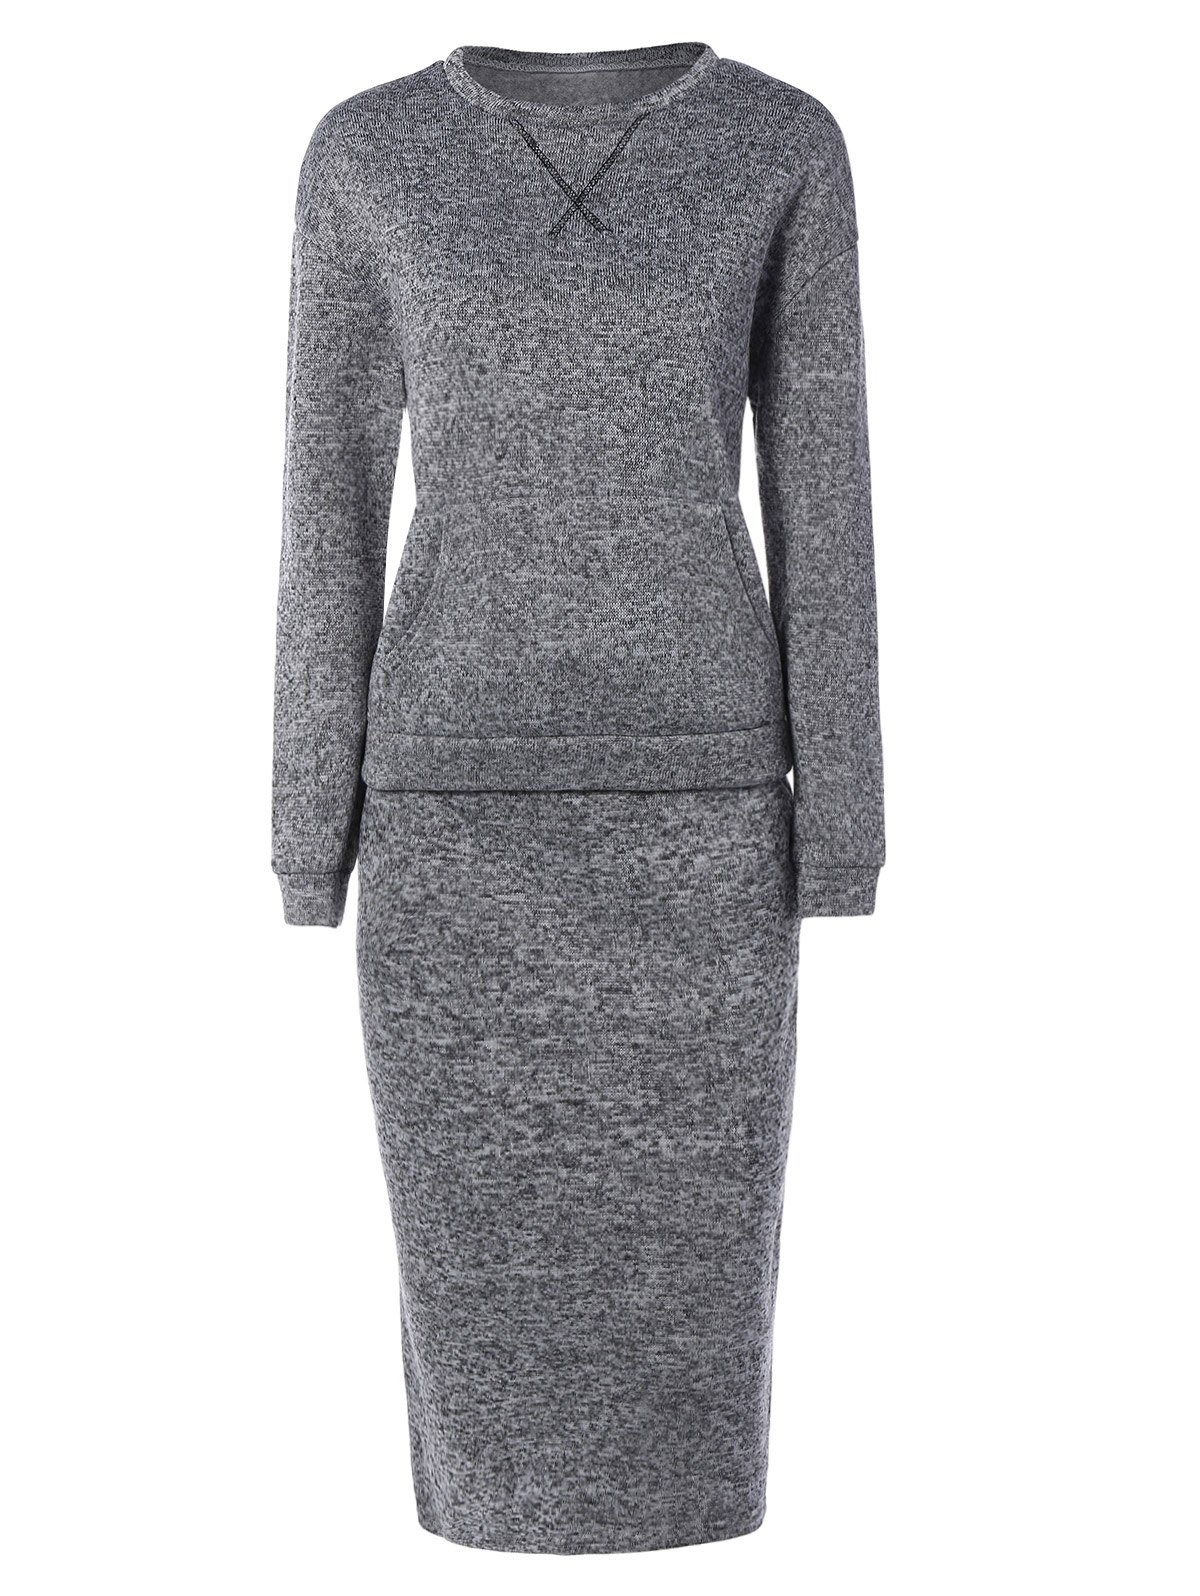 Space Dyed Sweater and Kintting Slit Pencil Skirt - DEEP GRAY XL